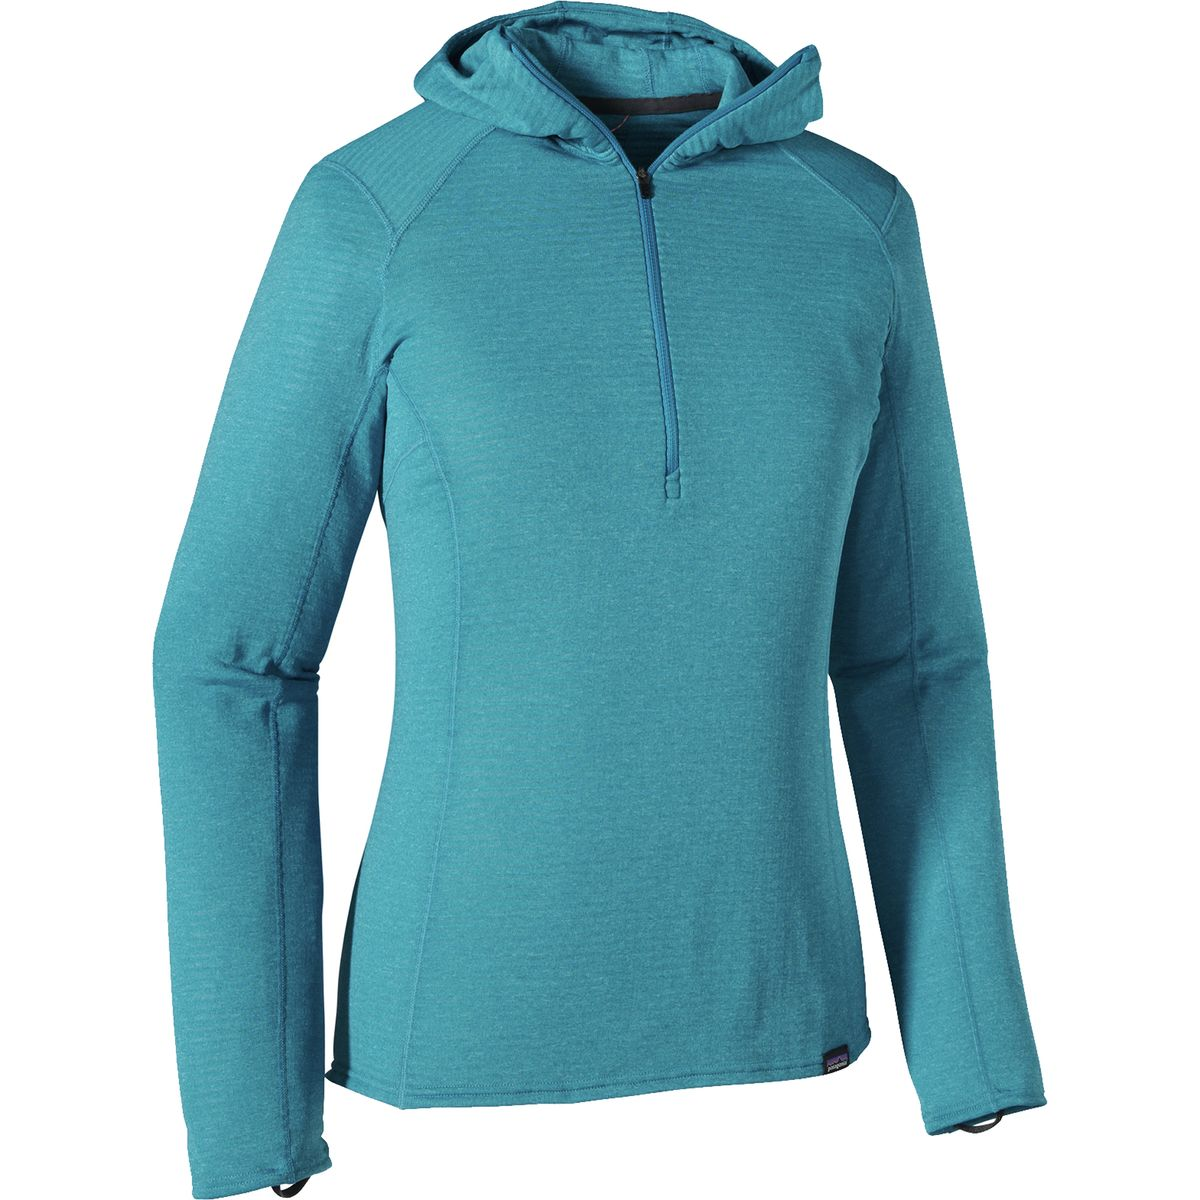 Patagonia Capilene Thermal Weight Zip-Neck Hooded Top - Women